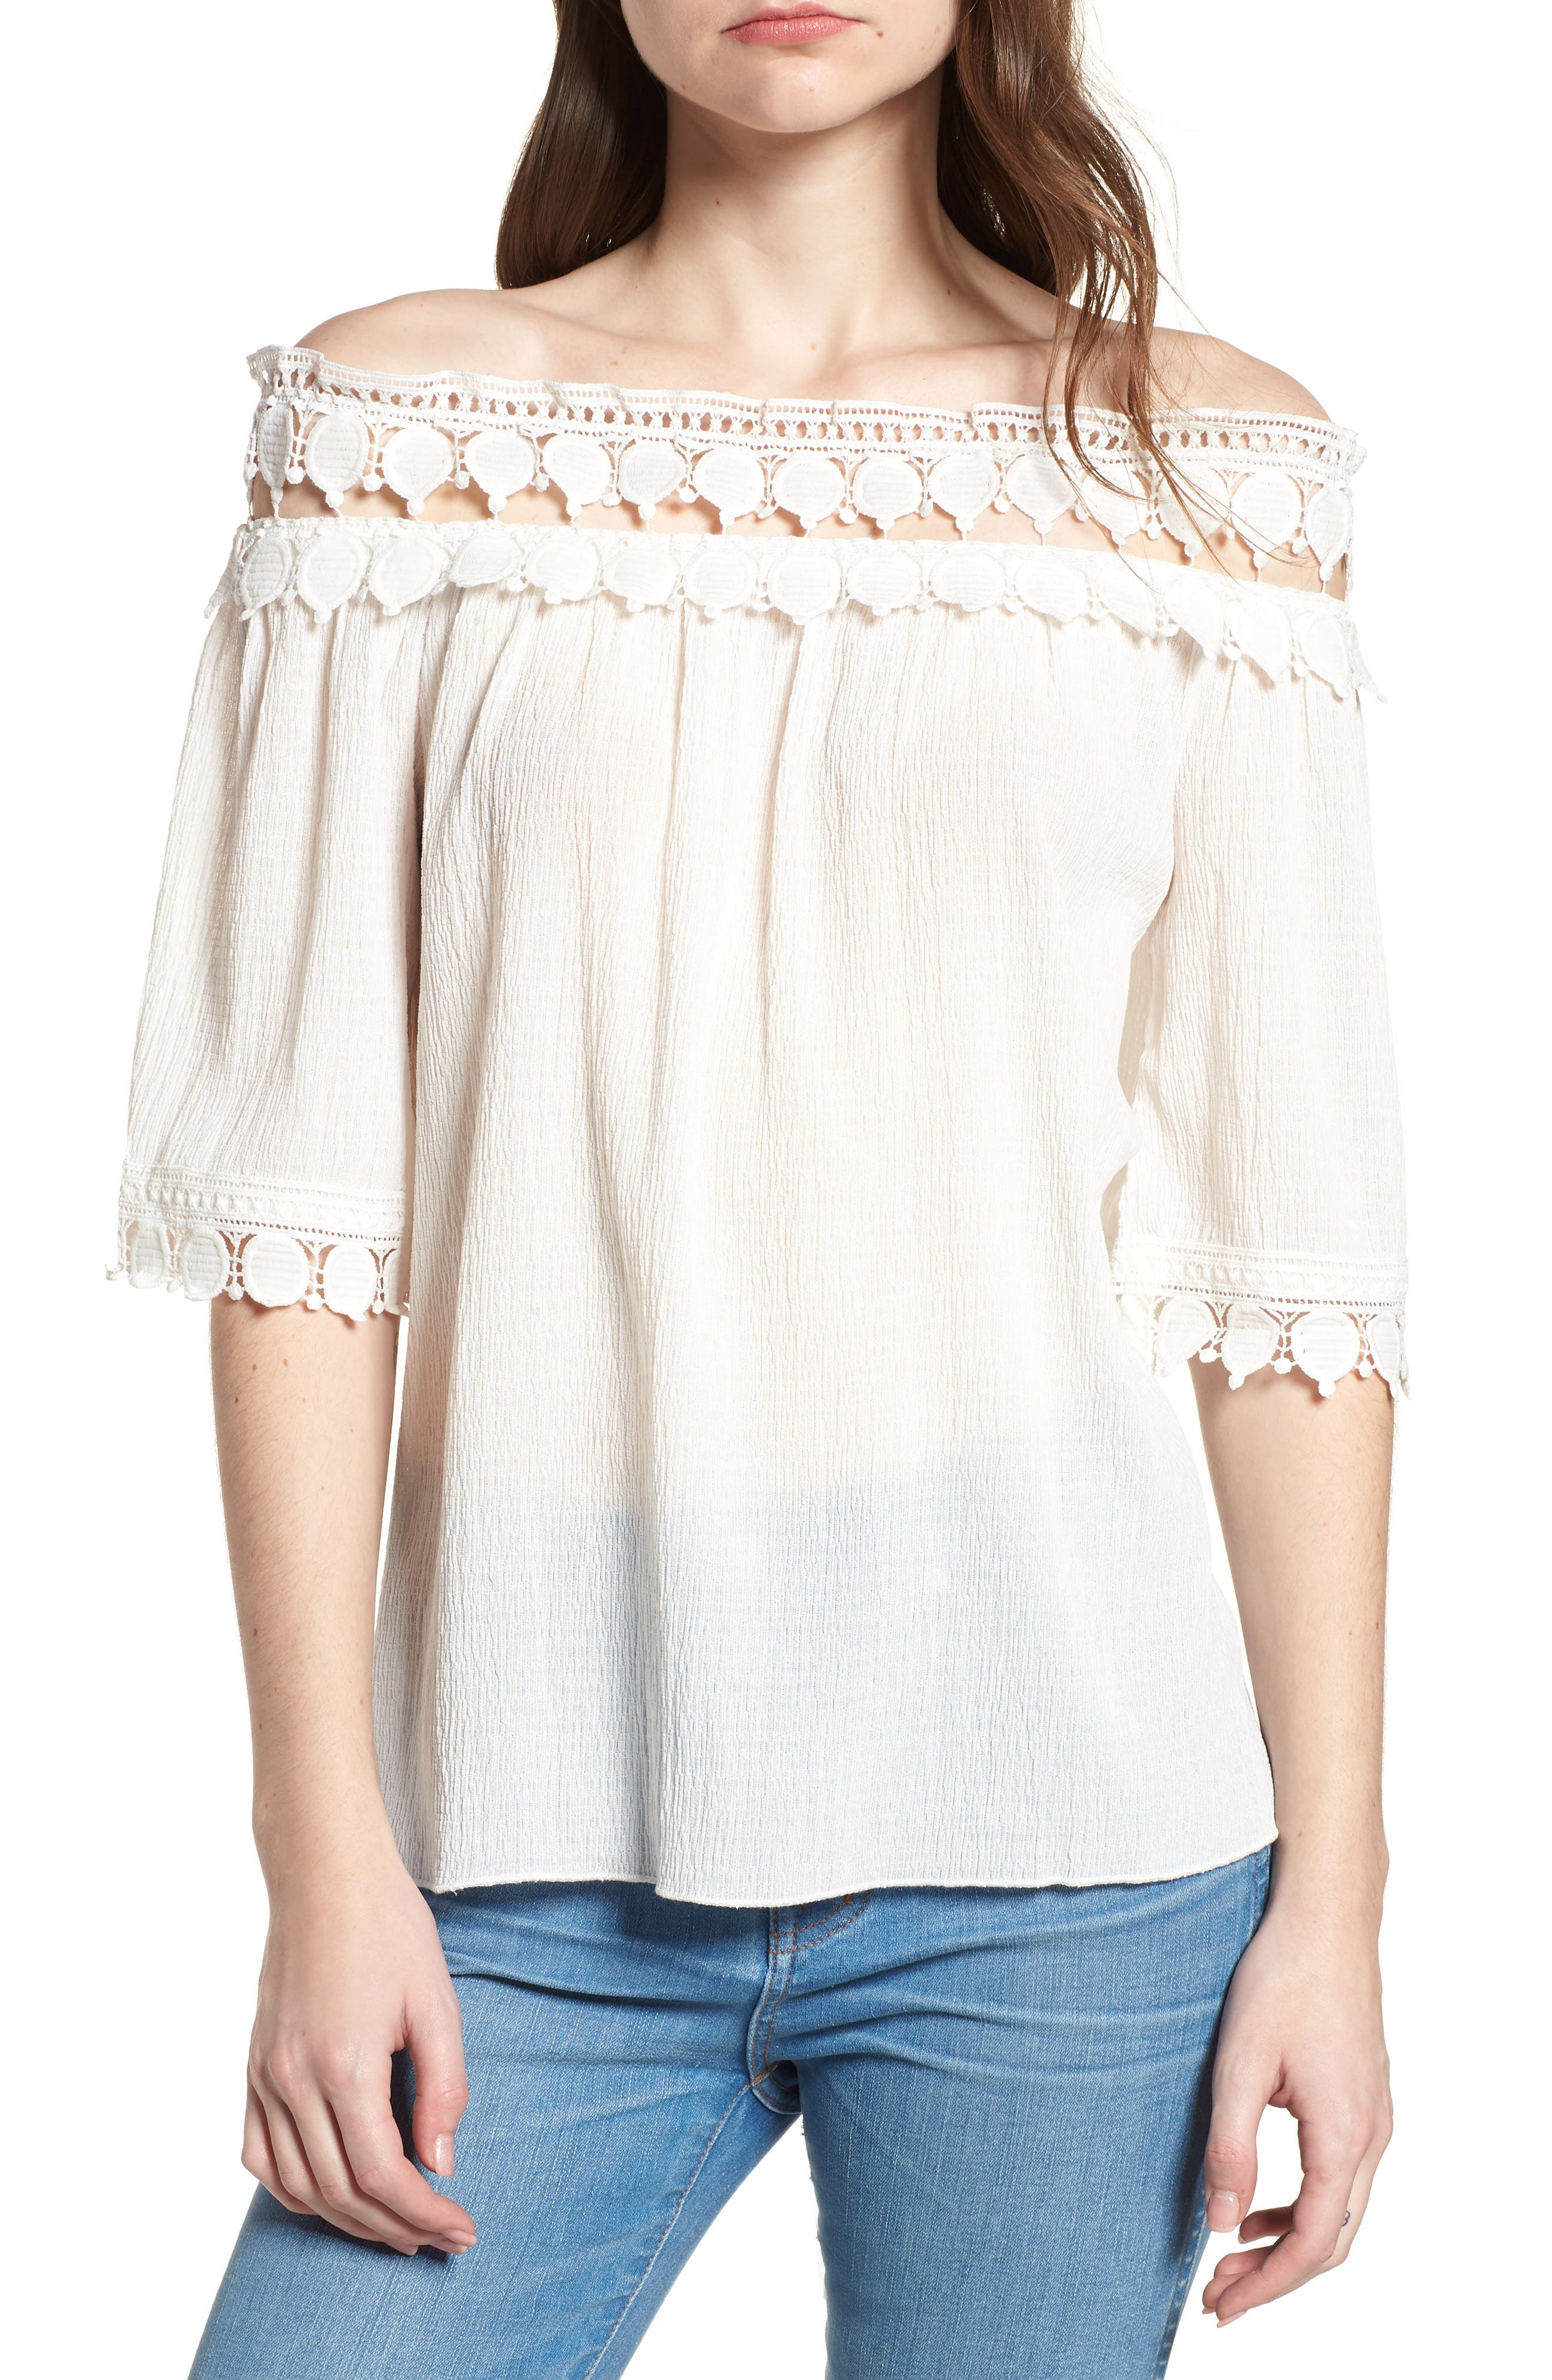 Bishop + Young Olivia Crochet Trim Off the Shoulder Top,                         Main,                         color, White